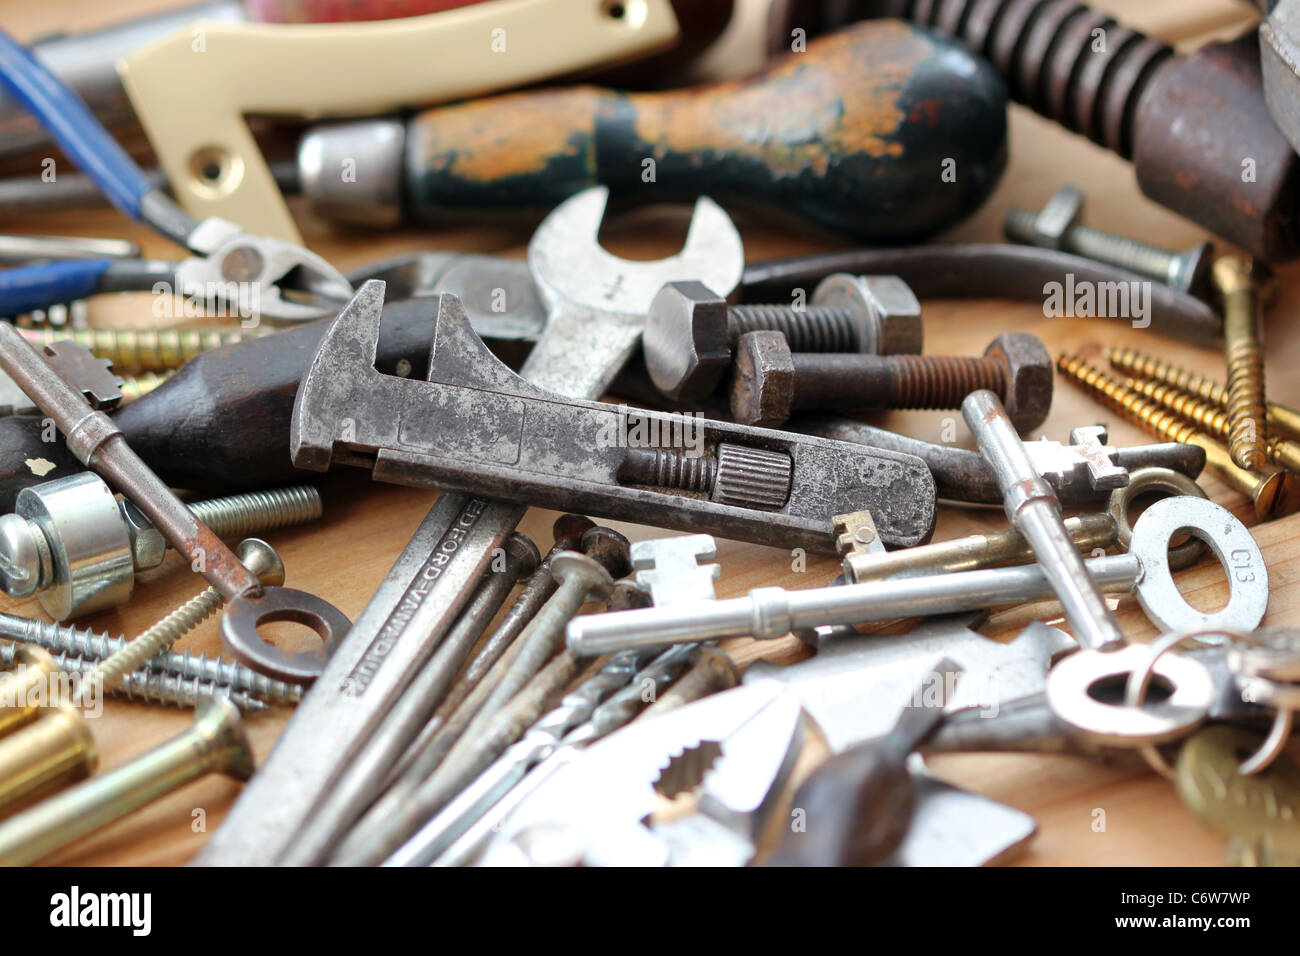 nuts bolts and spanners Stock Photo